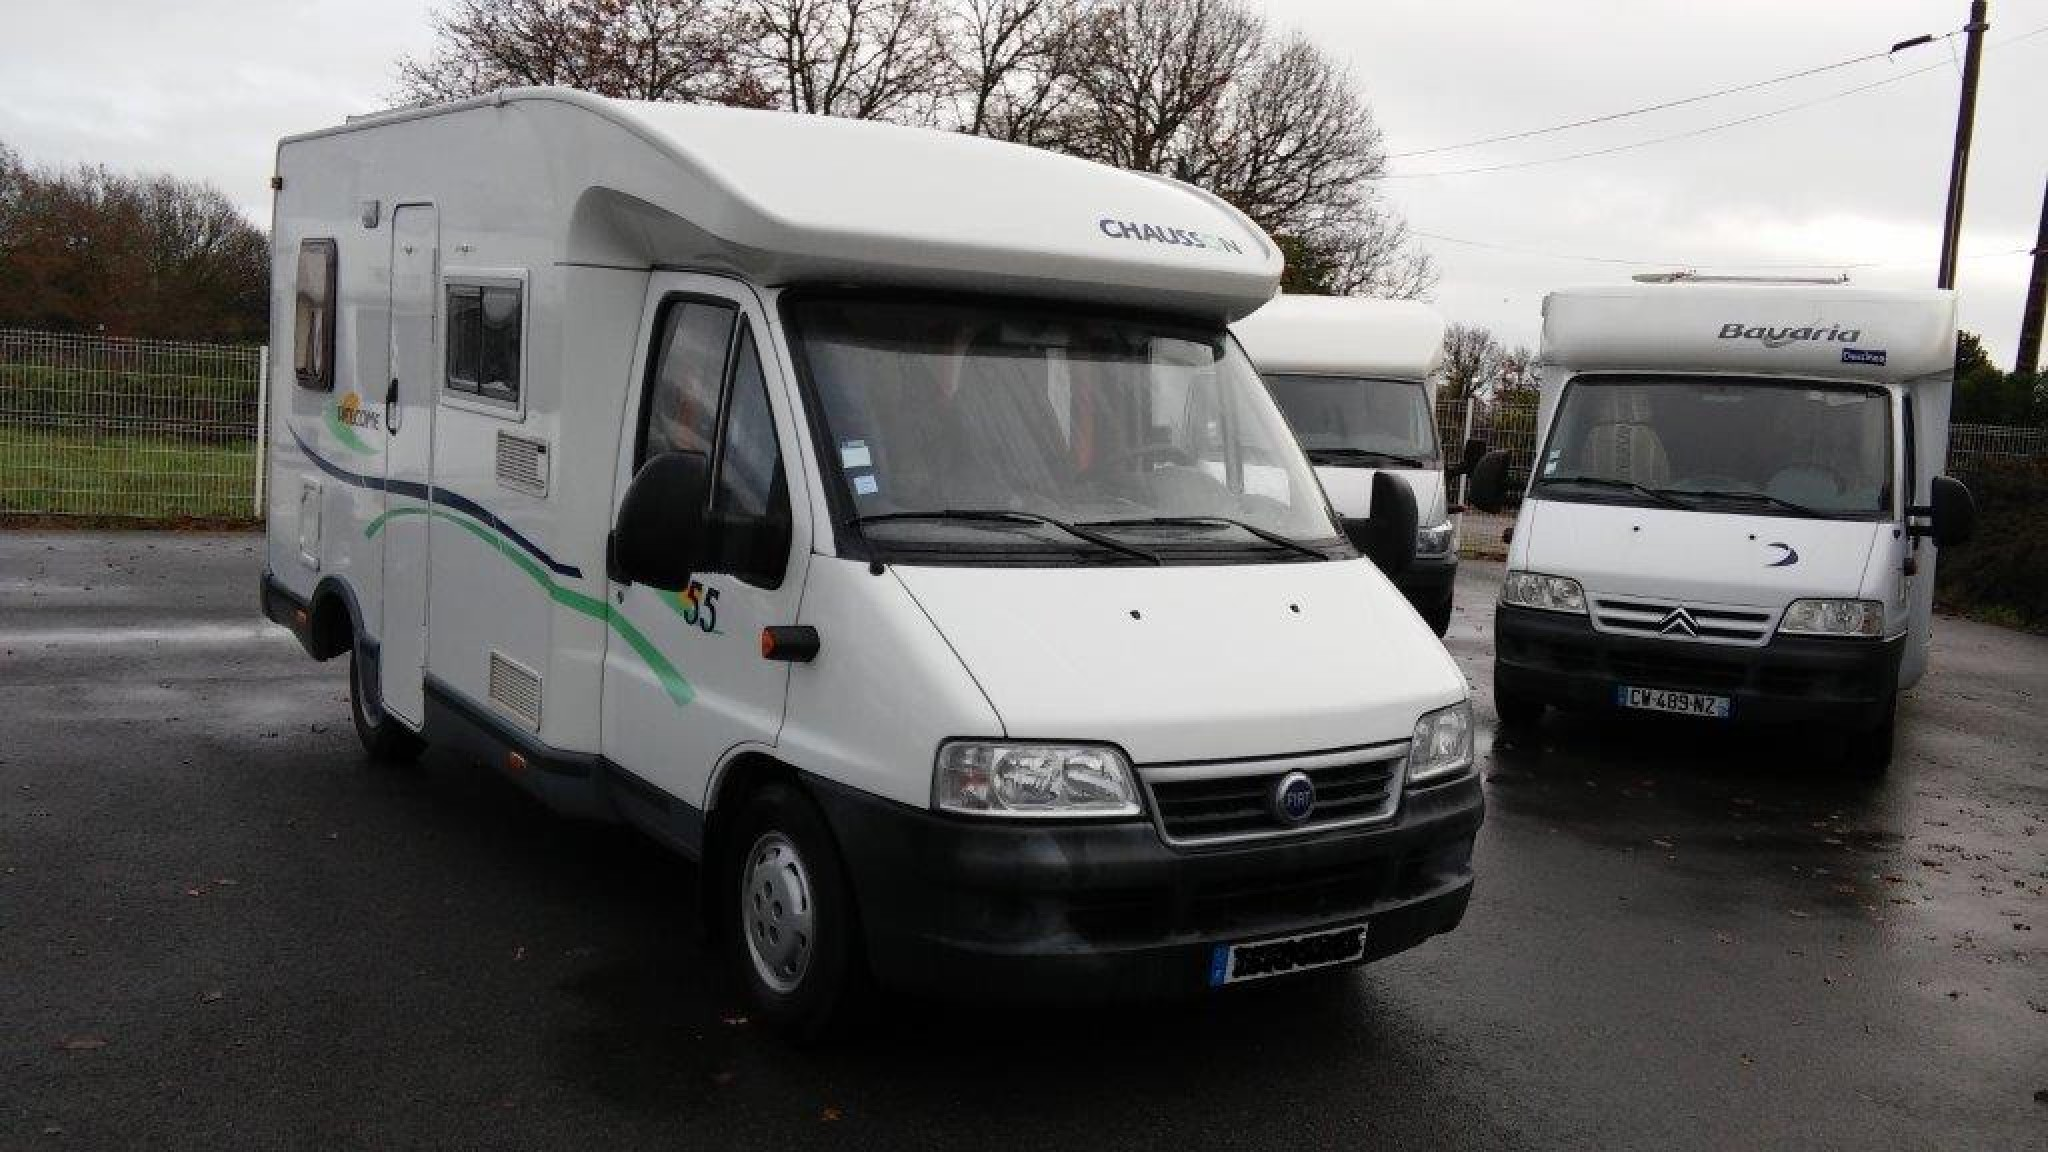 Chausson Welcome 55 - 1